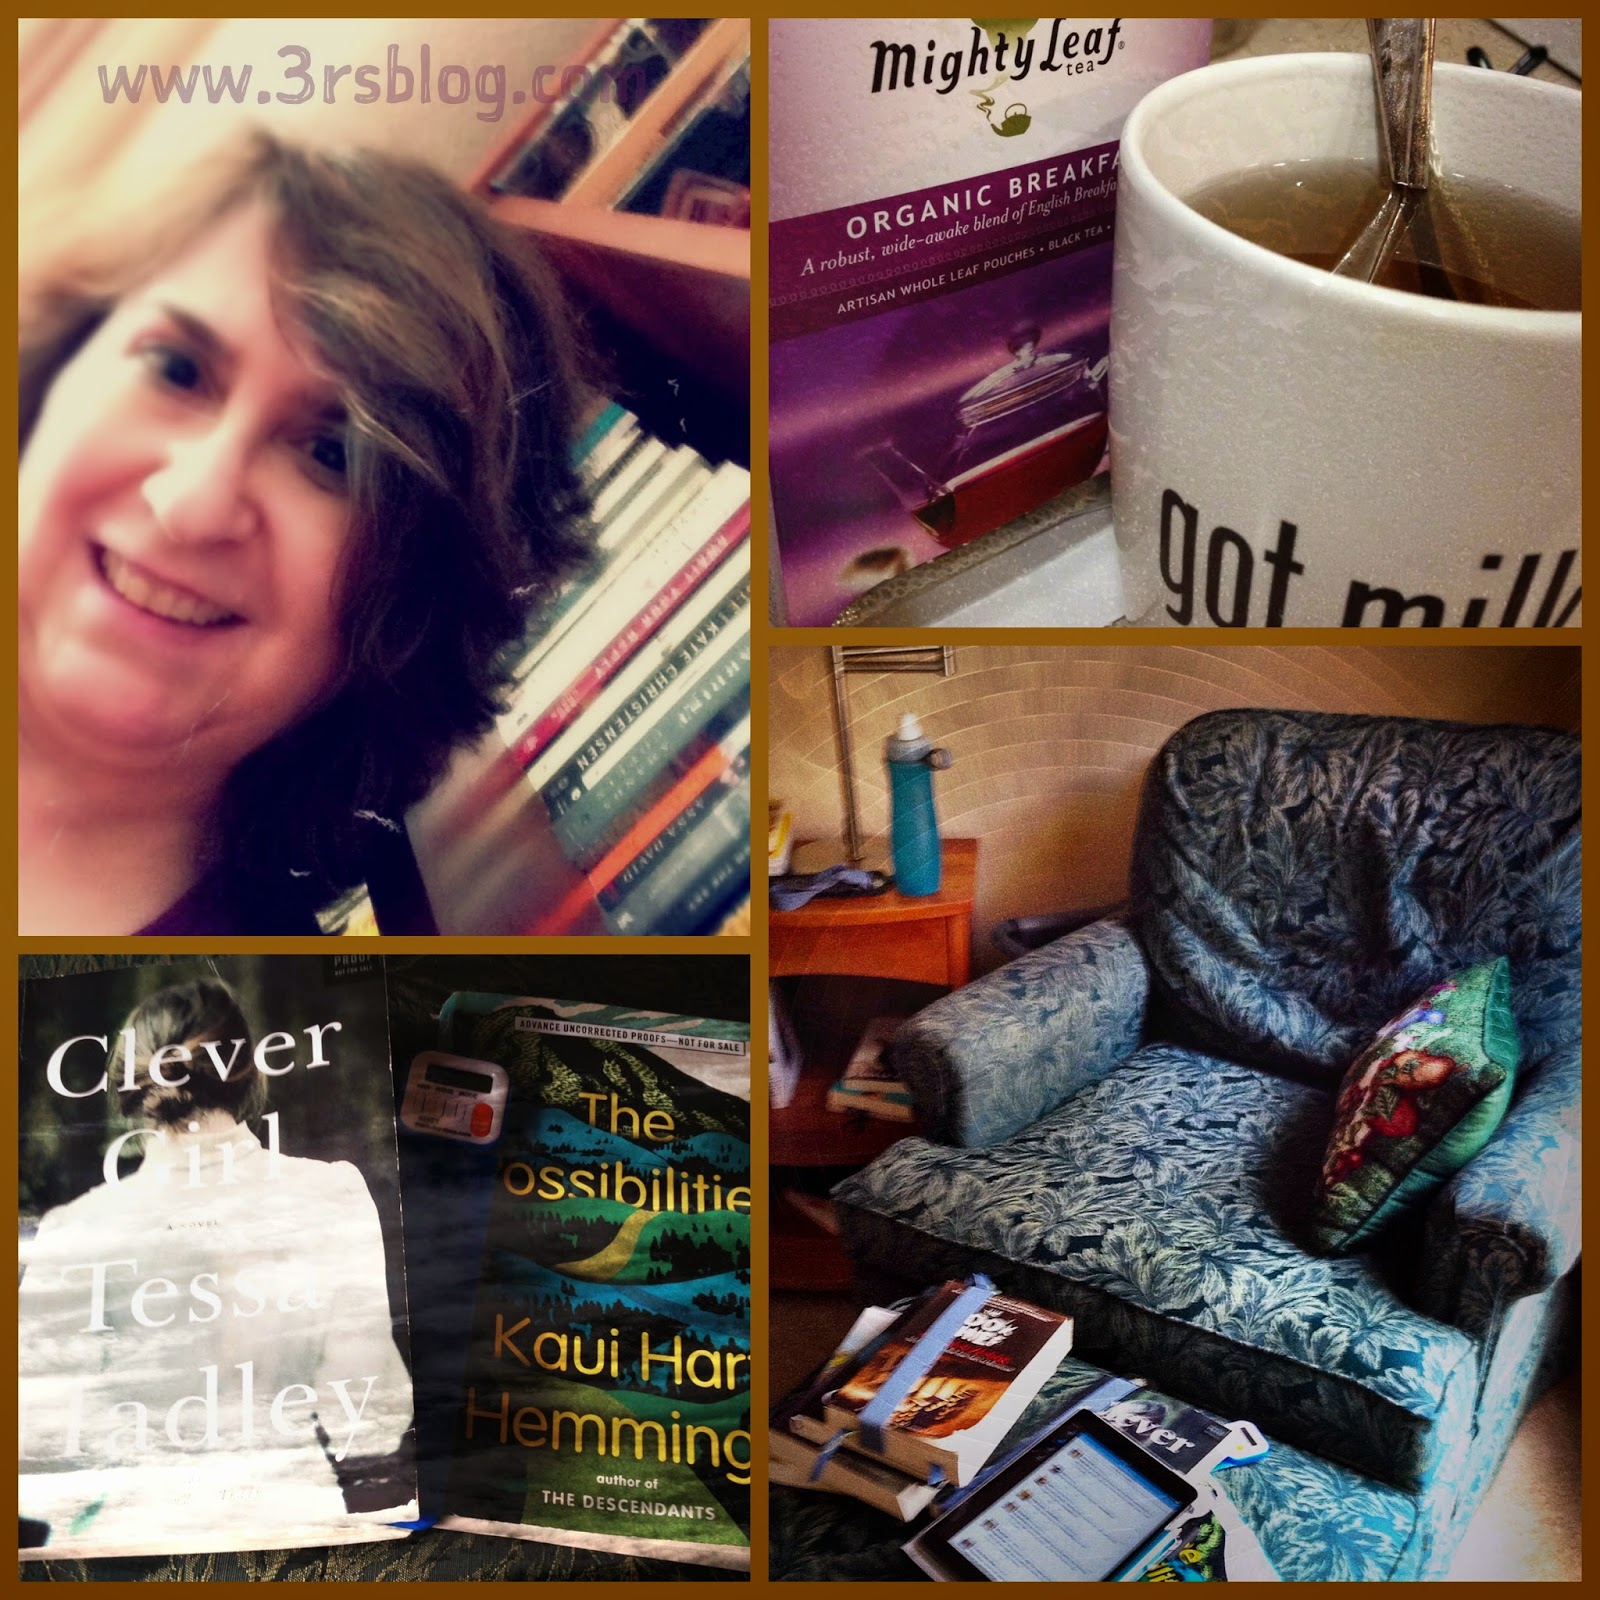 readathon collage 3rsblog